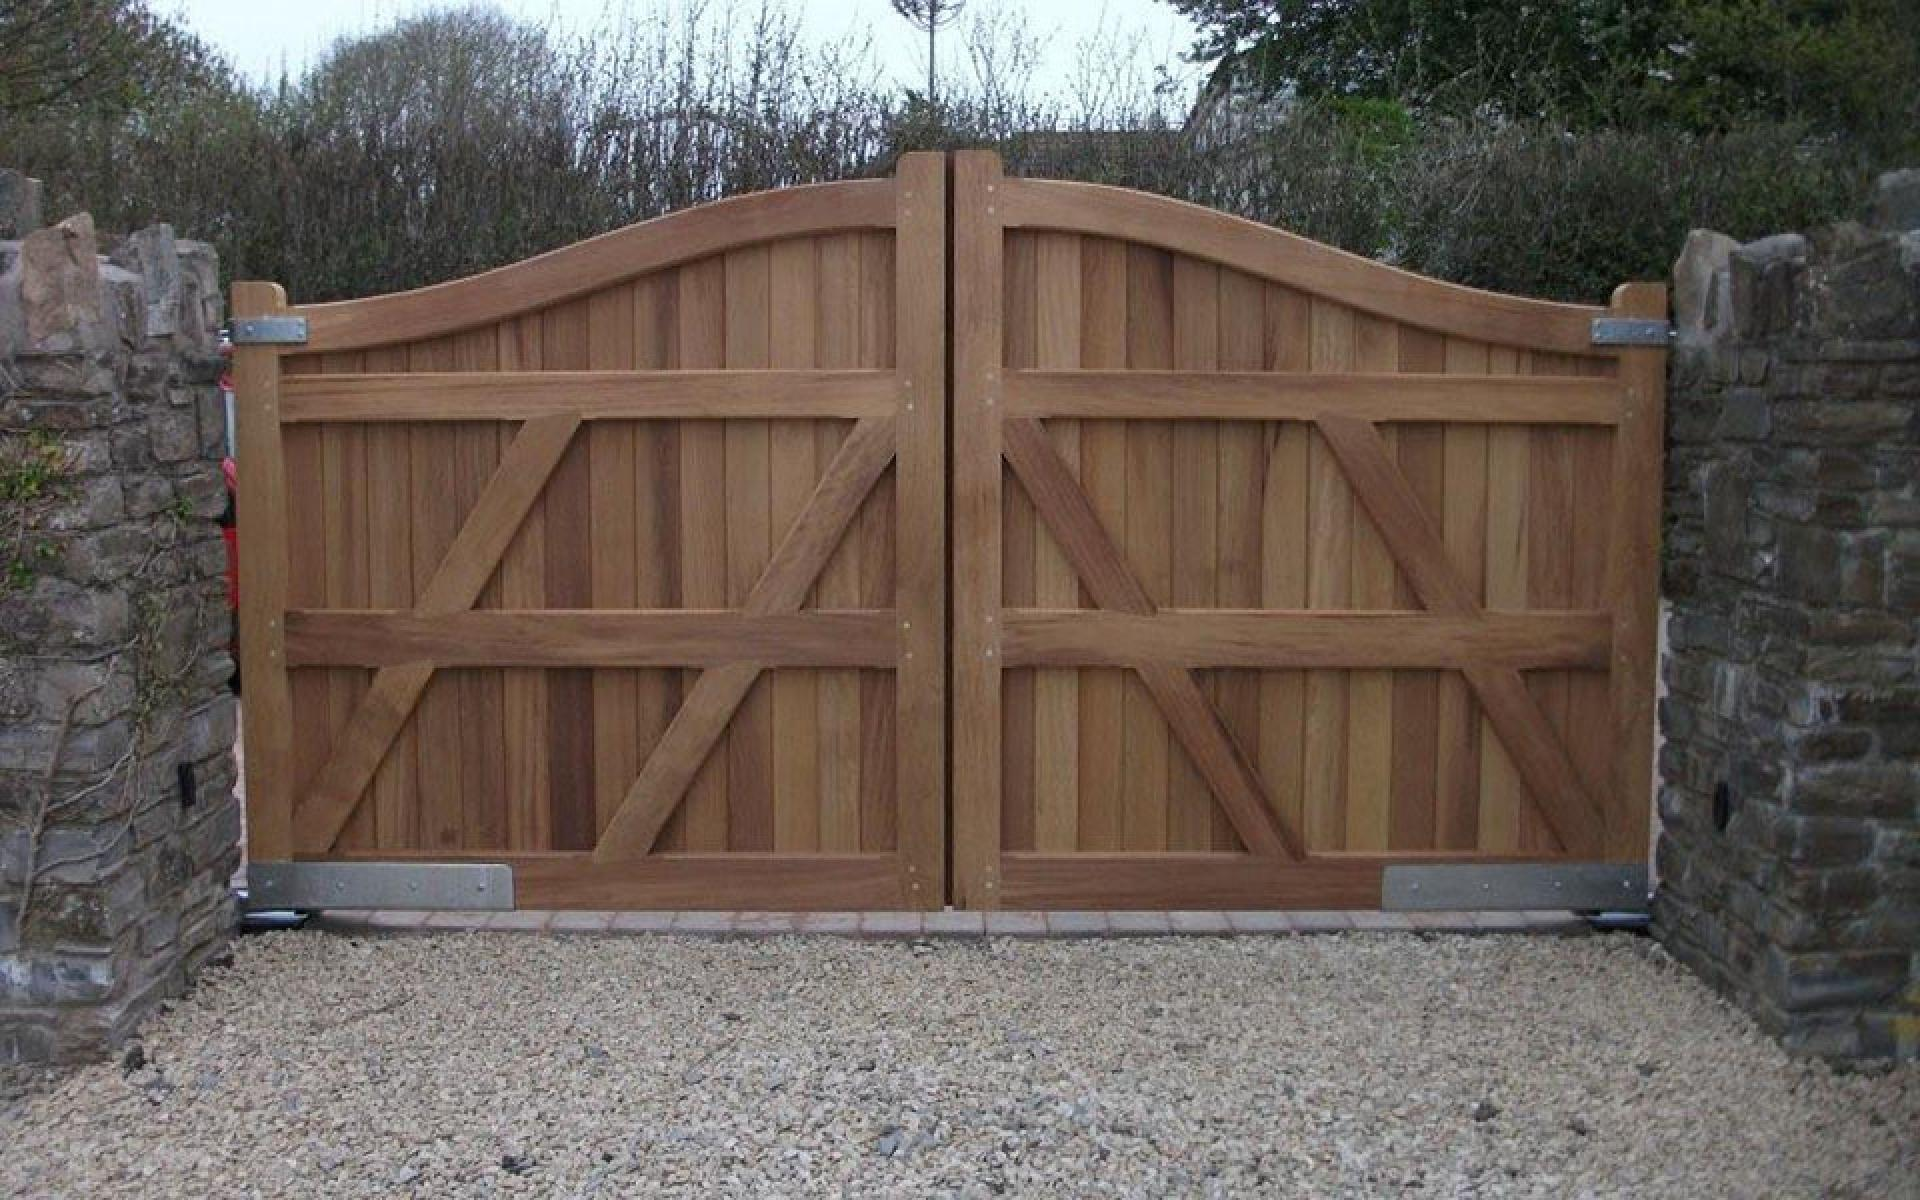 Crane wooden gate with underground automation (Courtesy of A1 Gates & Securities)